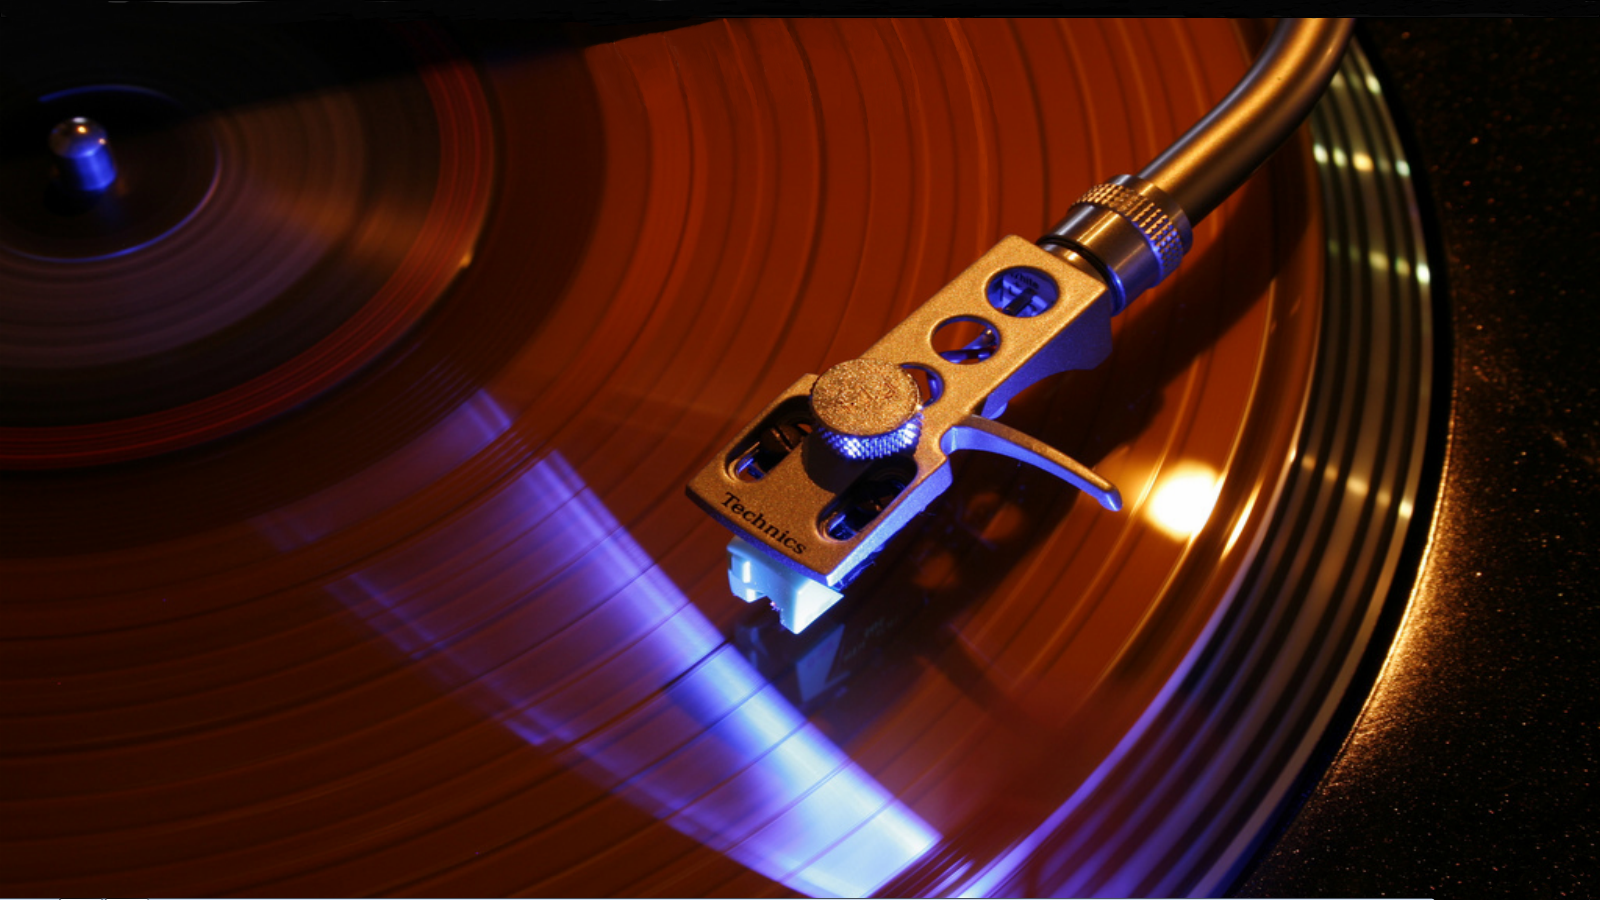 Record vinyl record player wallpaper 1600x900 226889 WallpaperUP 1600x900